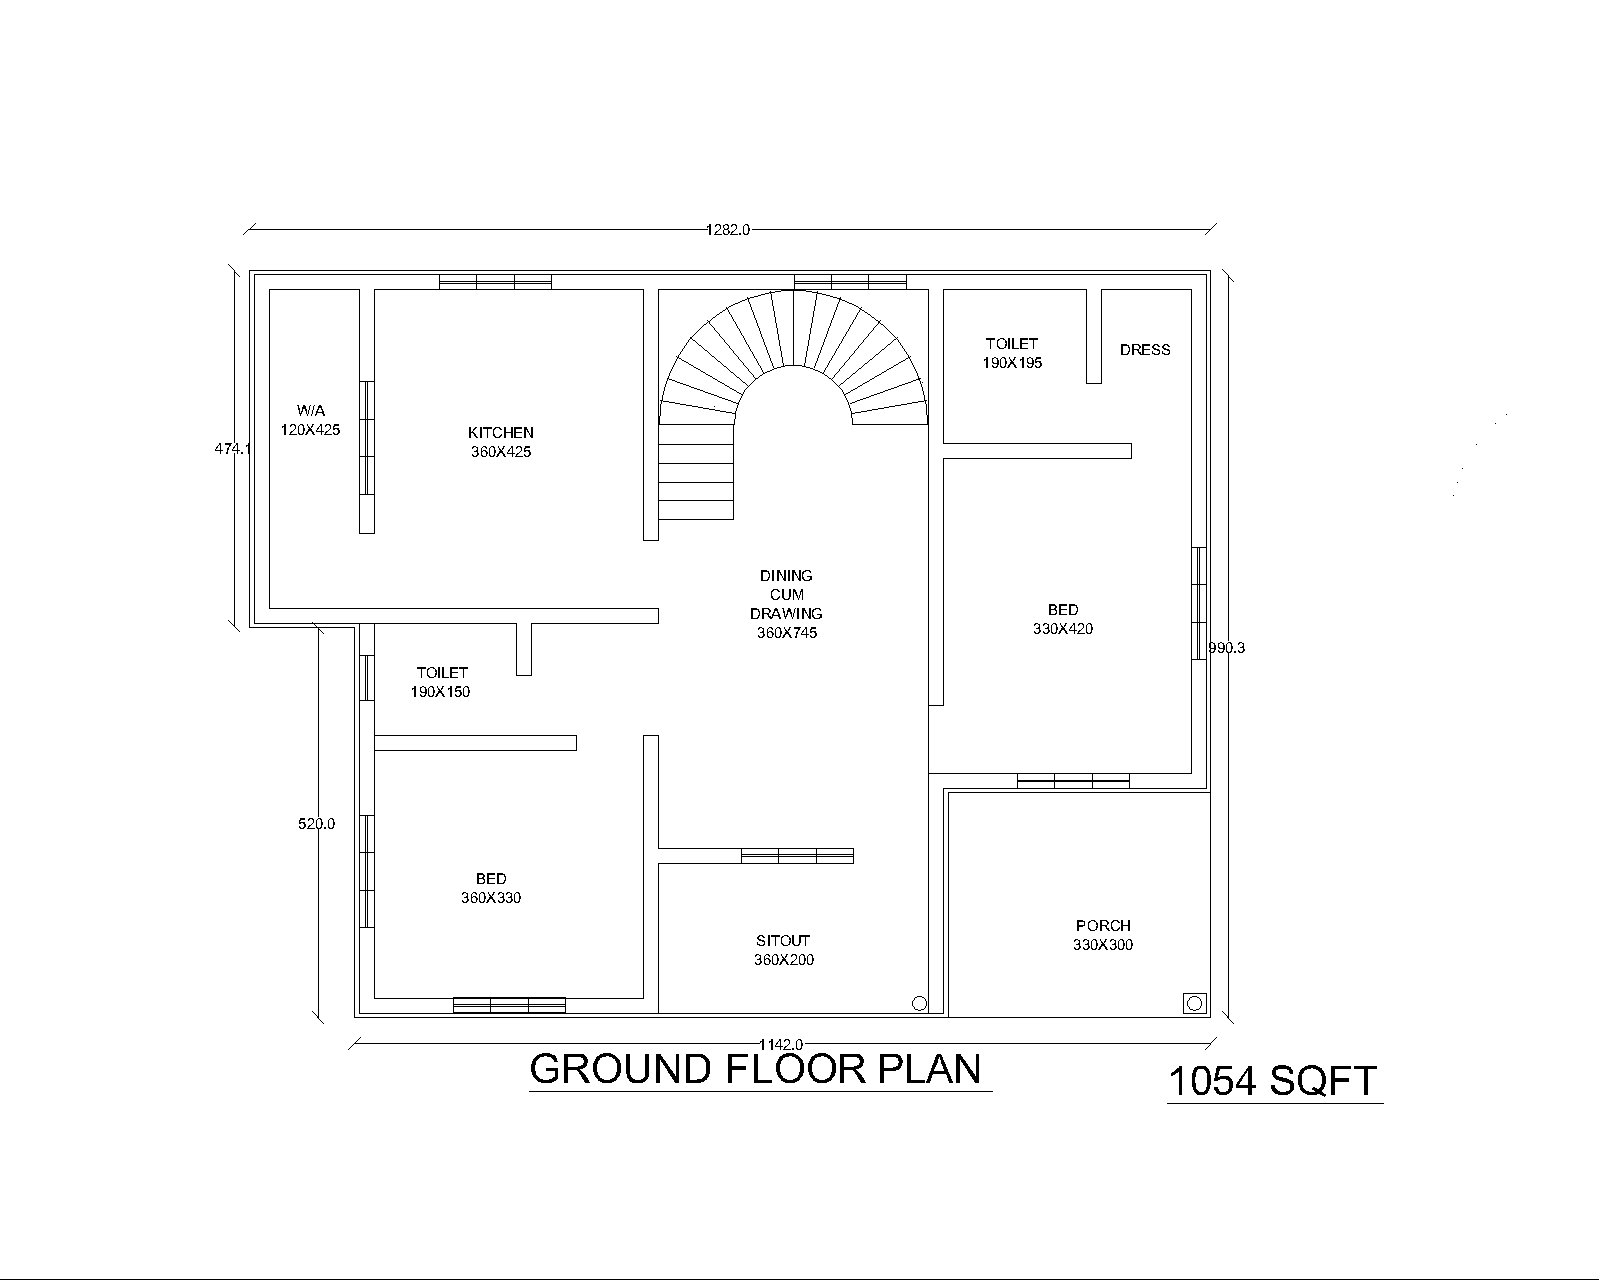 Best Uu27Itu Two Bedroom House Plans In Kerala With Pictures